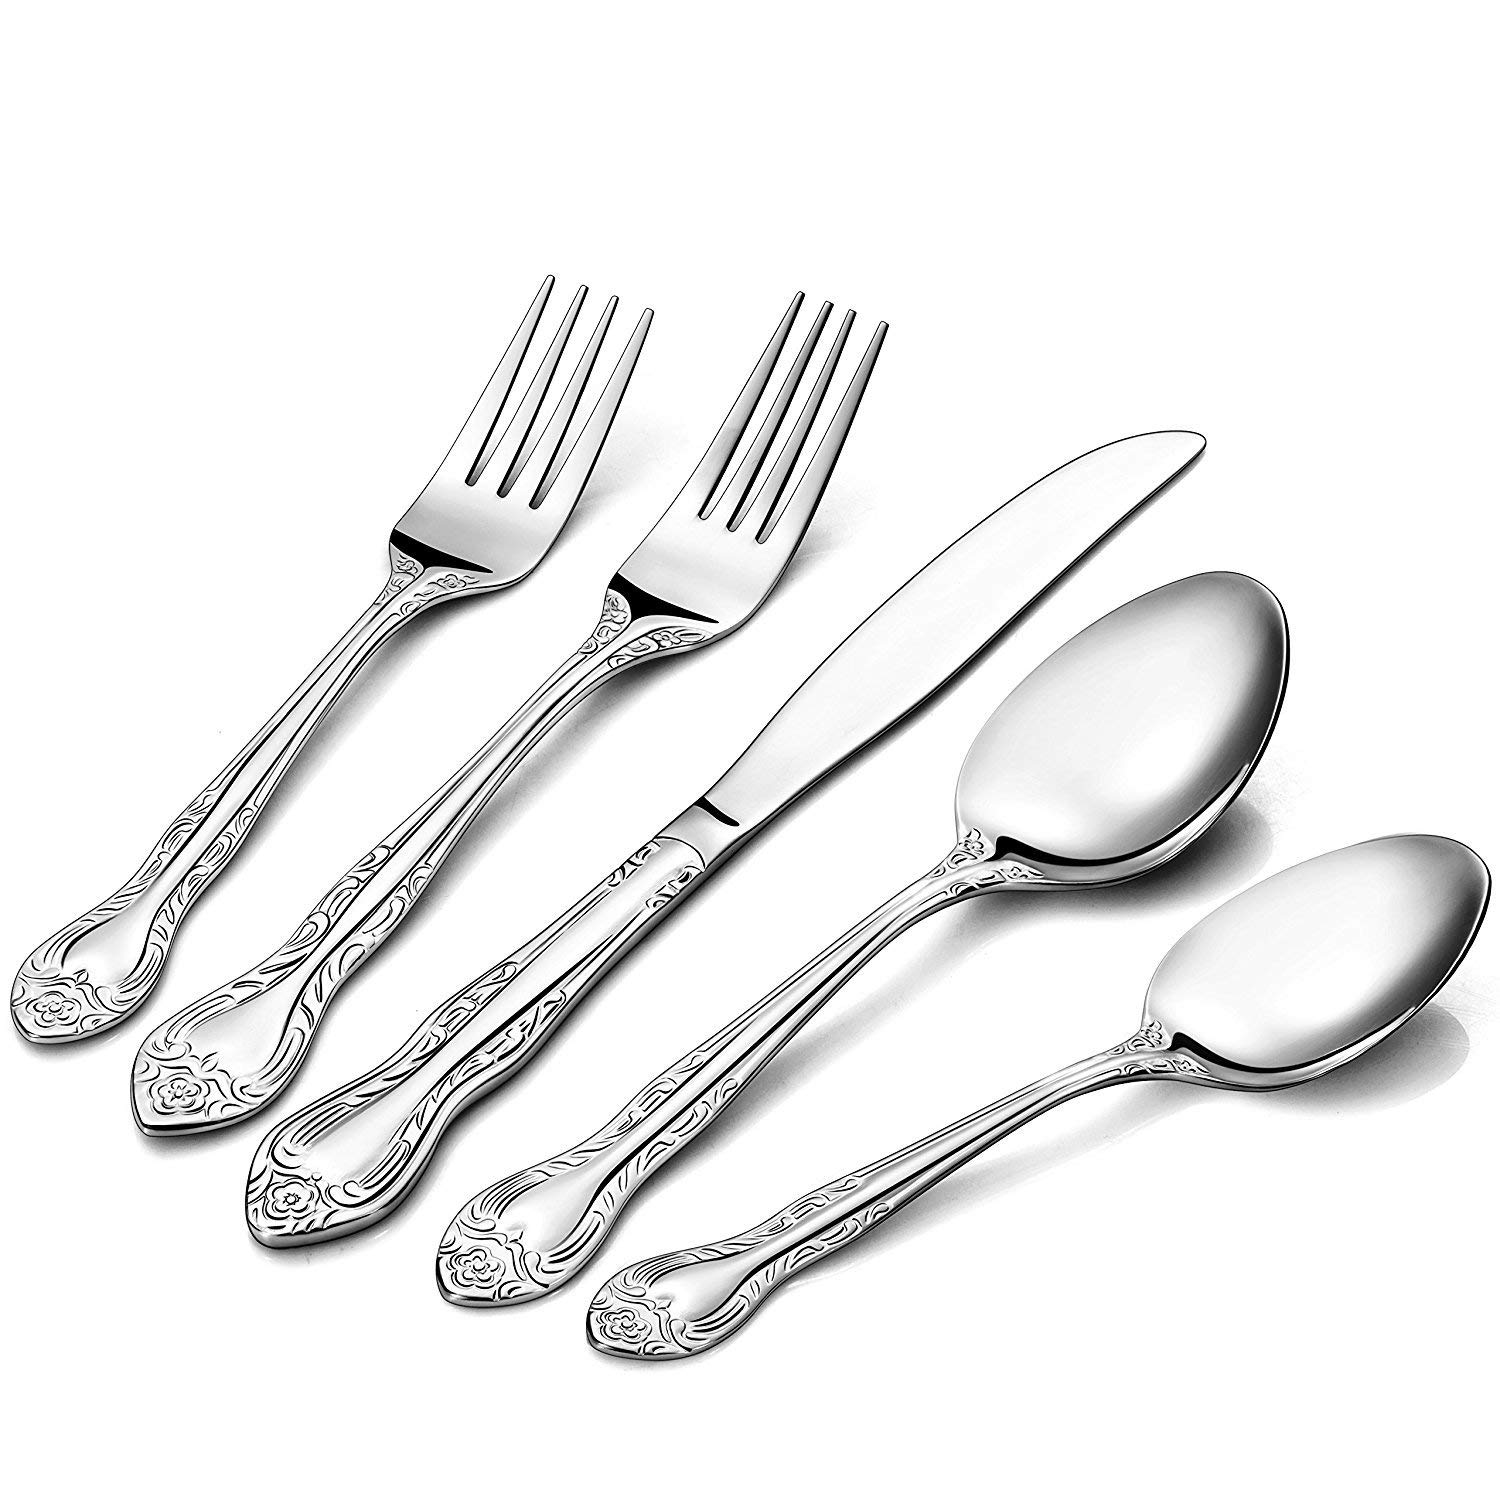 Silver Crown Town & Country Pattern Stainless Steel Cutlery Flatware, 20-Piece Silverware Set, Service for 4